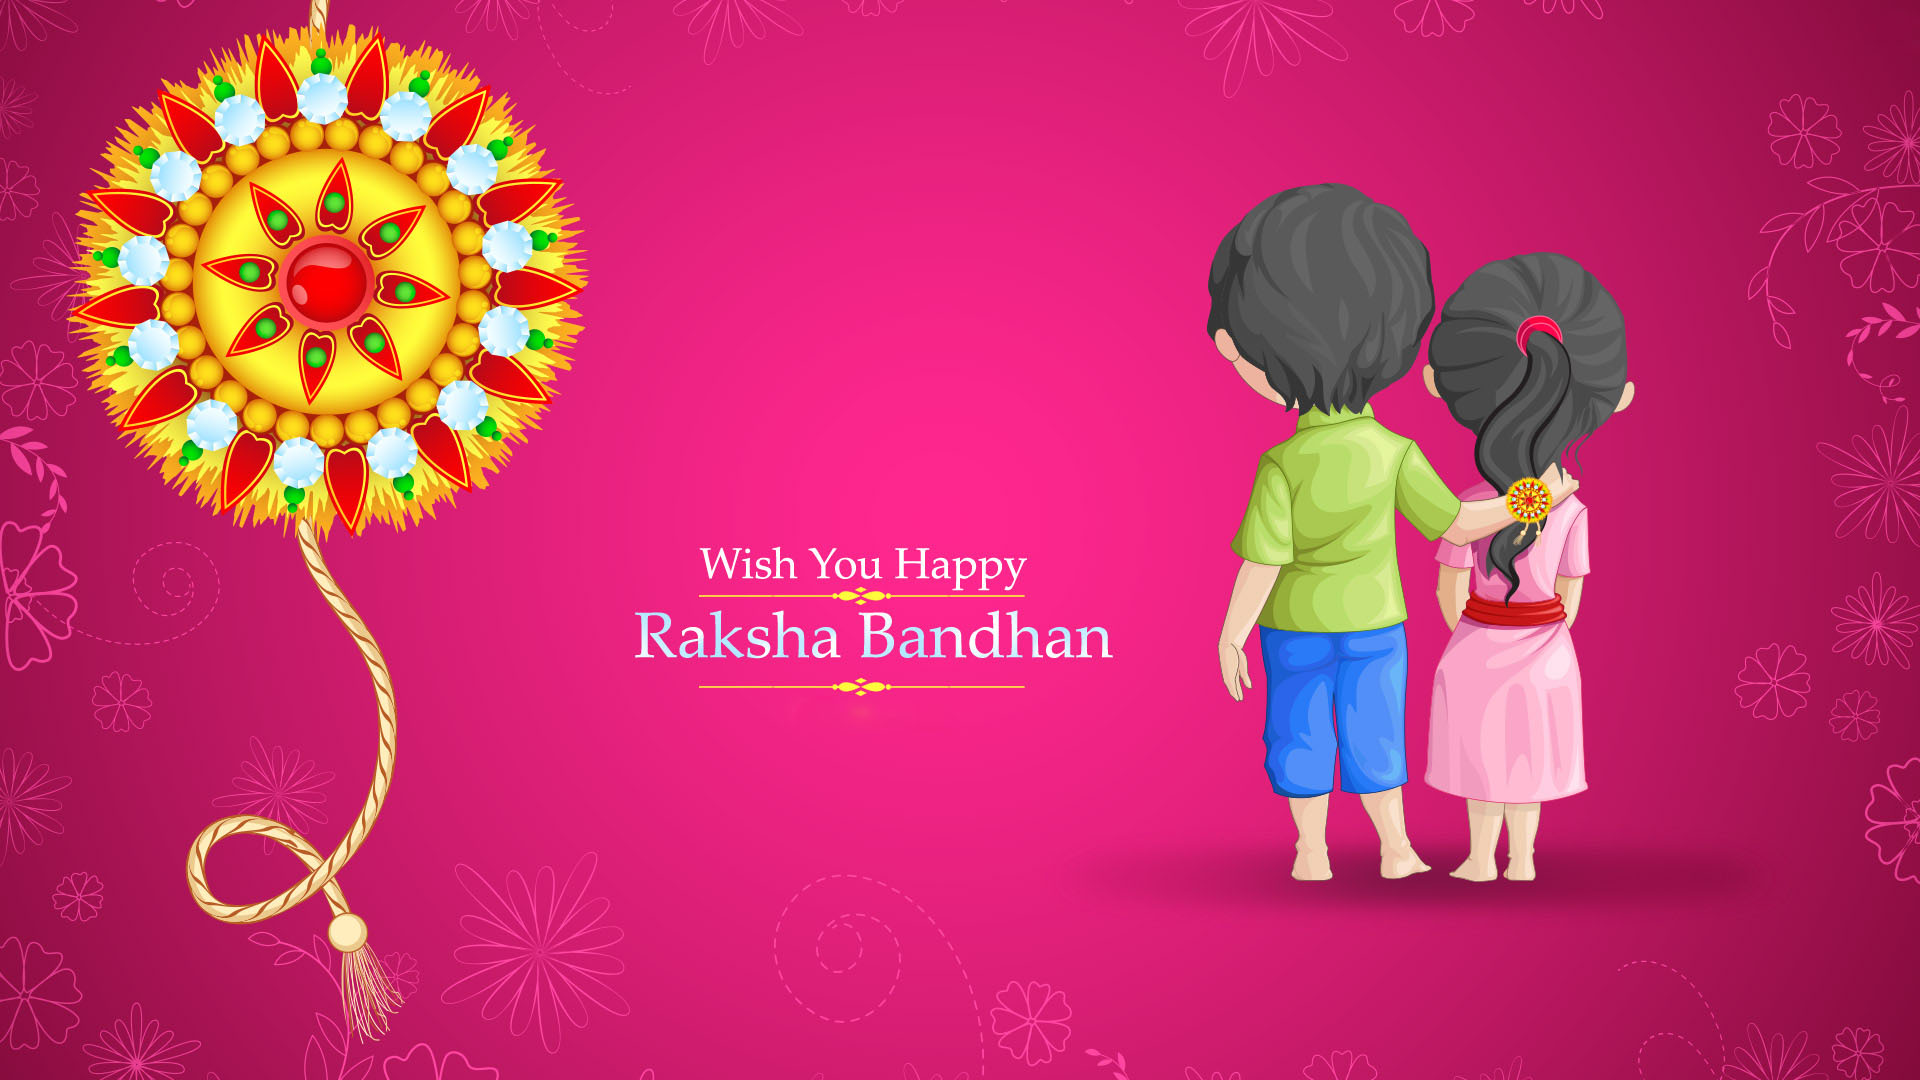 Happy Raksha Bandhan Images HD, Wallpapers for Whatsapp DP – Free Download